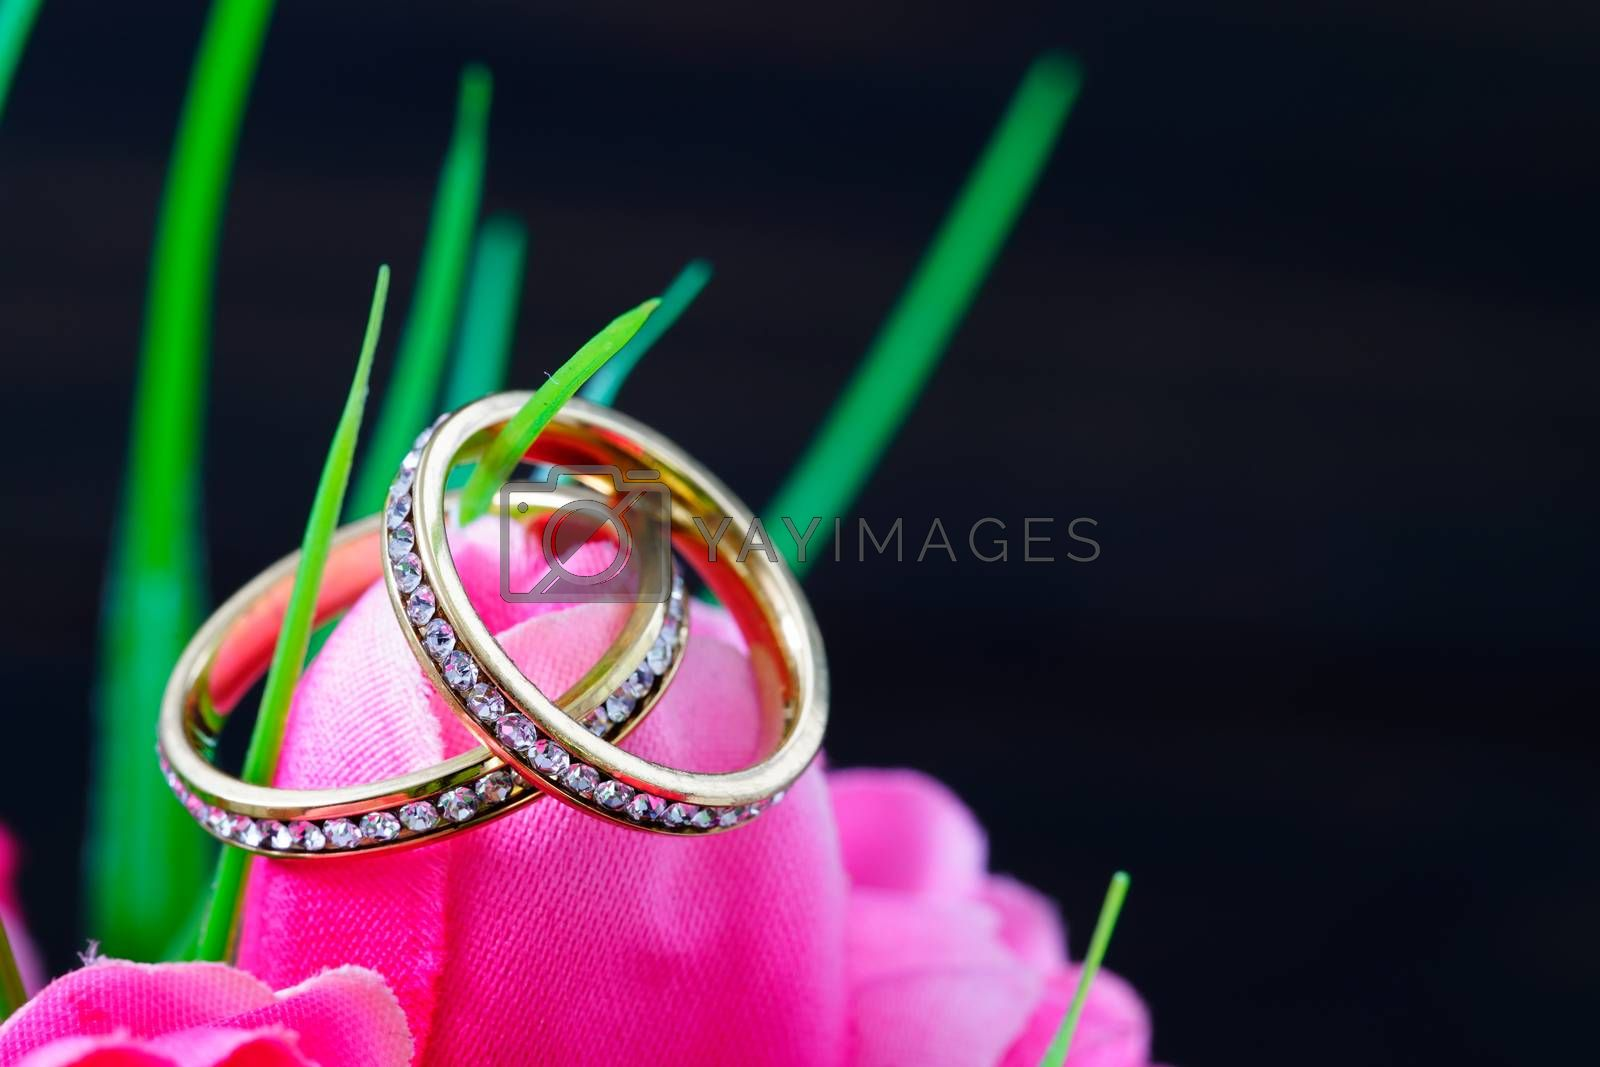 Wedding ring resting in a fake pink tulip flower by stoonn